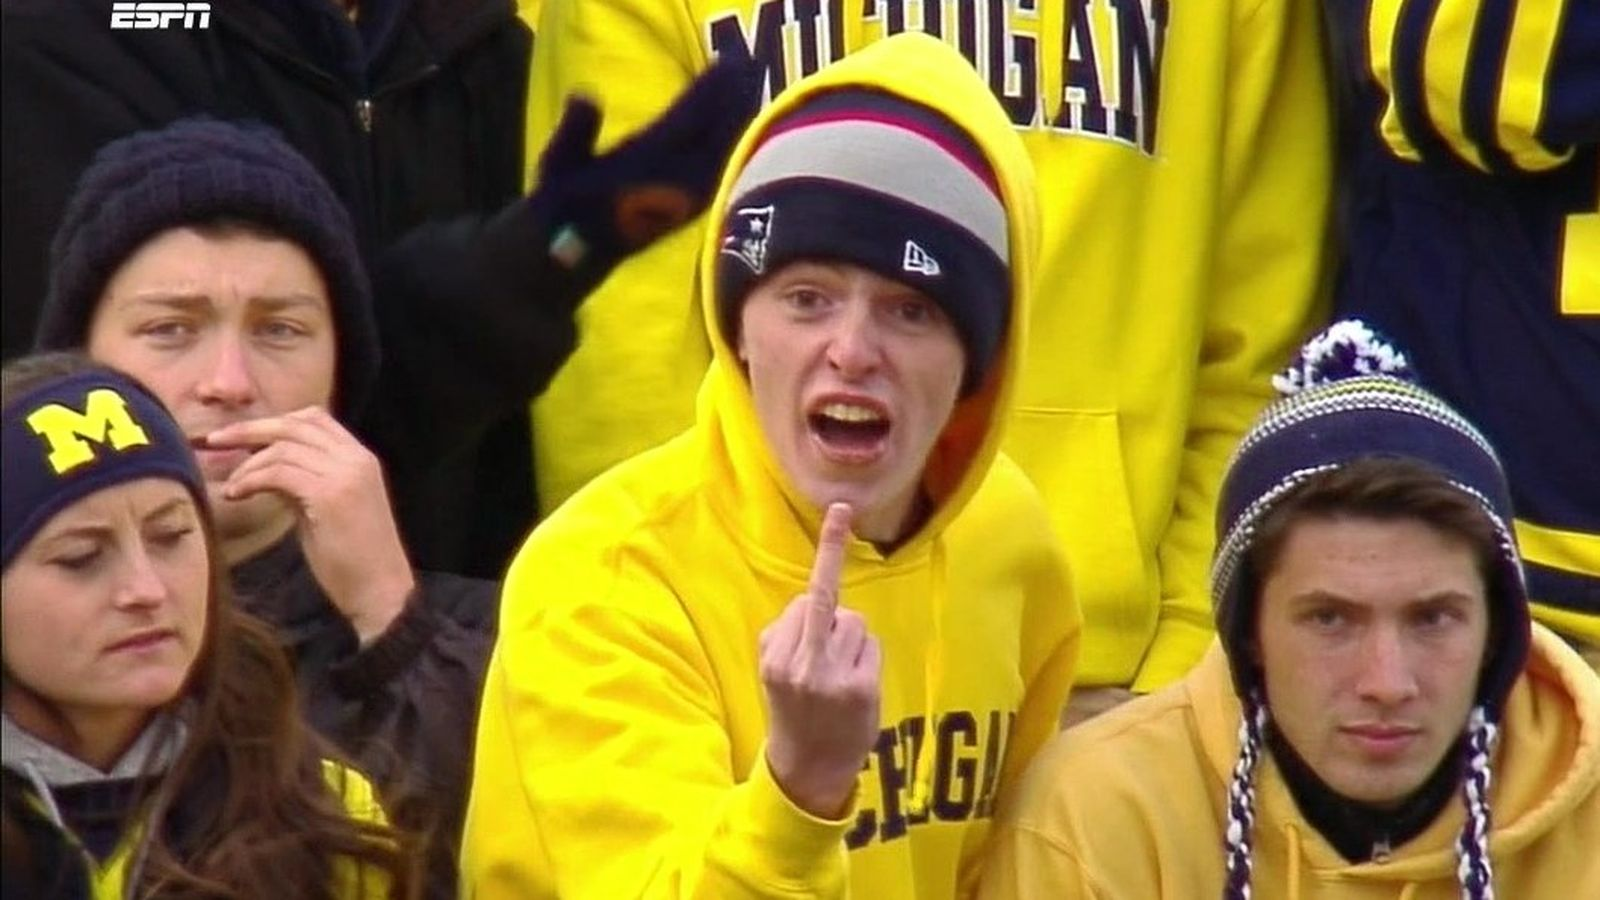 Gay michigan fan